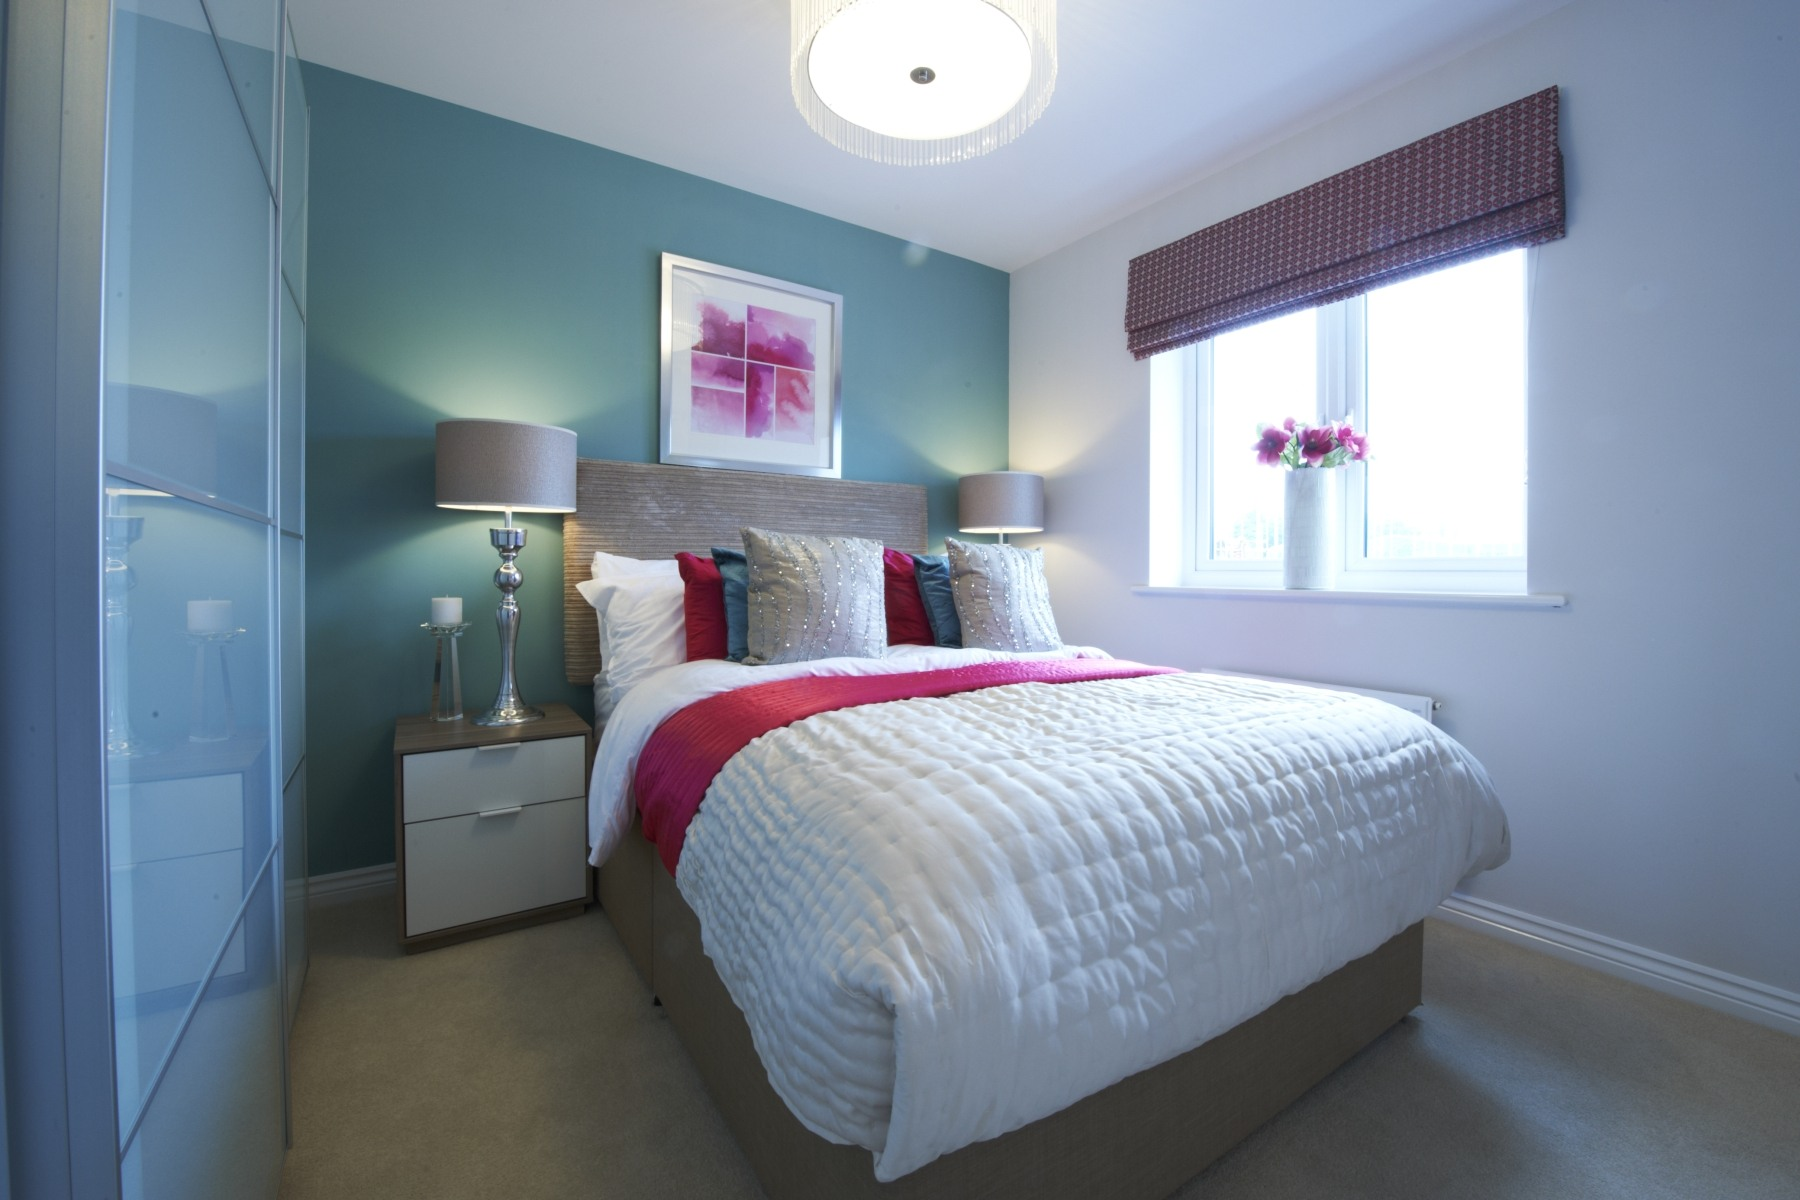 Taylor Wimpey Exeter - Cranbrook - Easdale example bedroom 2